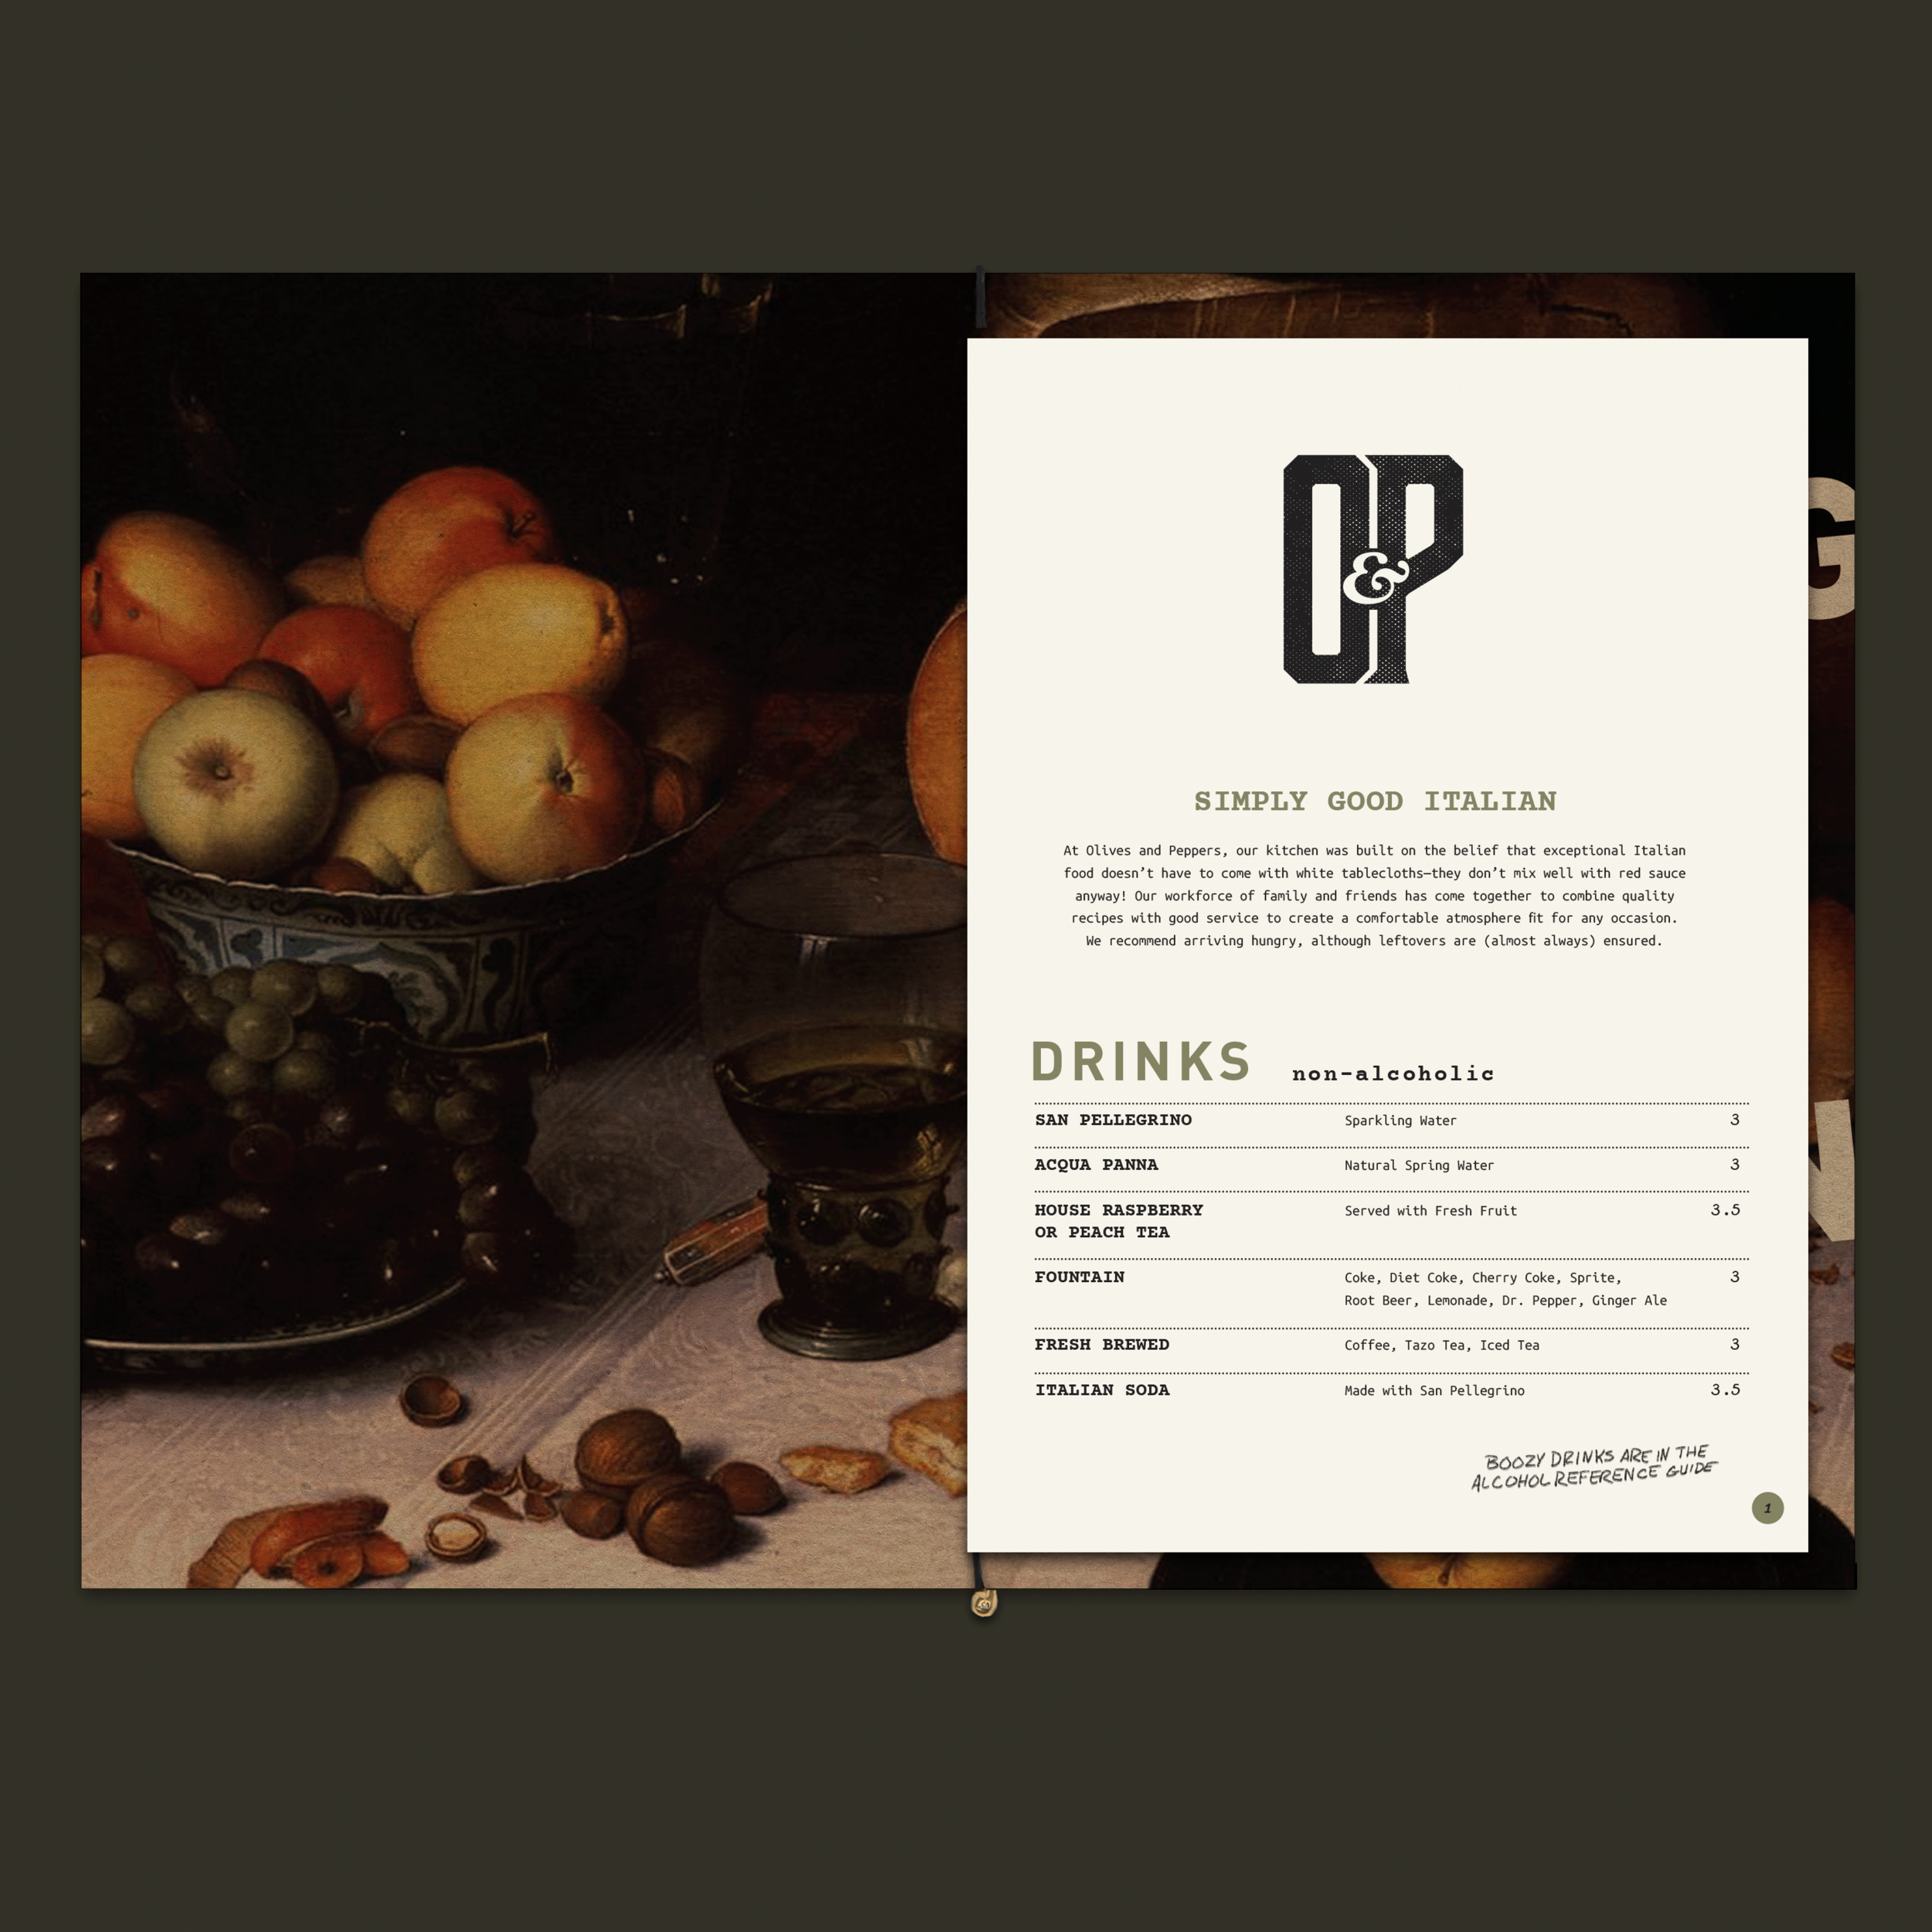 restaurant_menu_olives and peppers_bootstrap design co_dinner-menu-page1.png